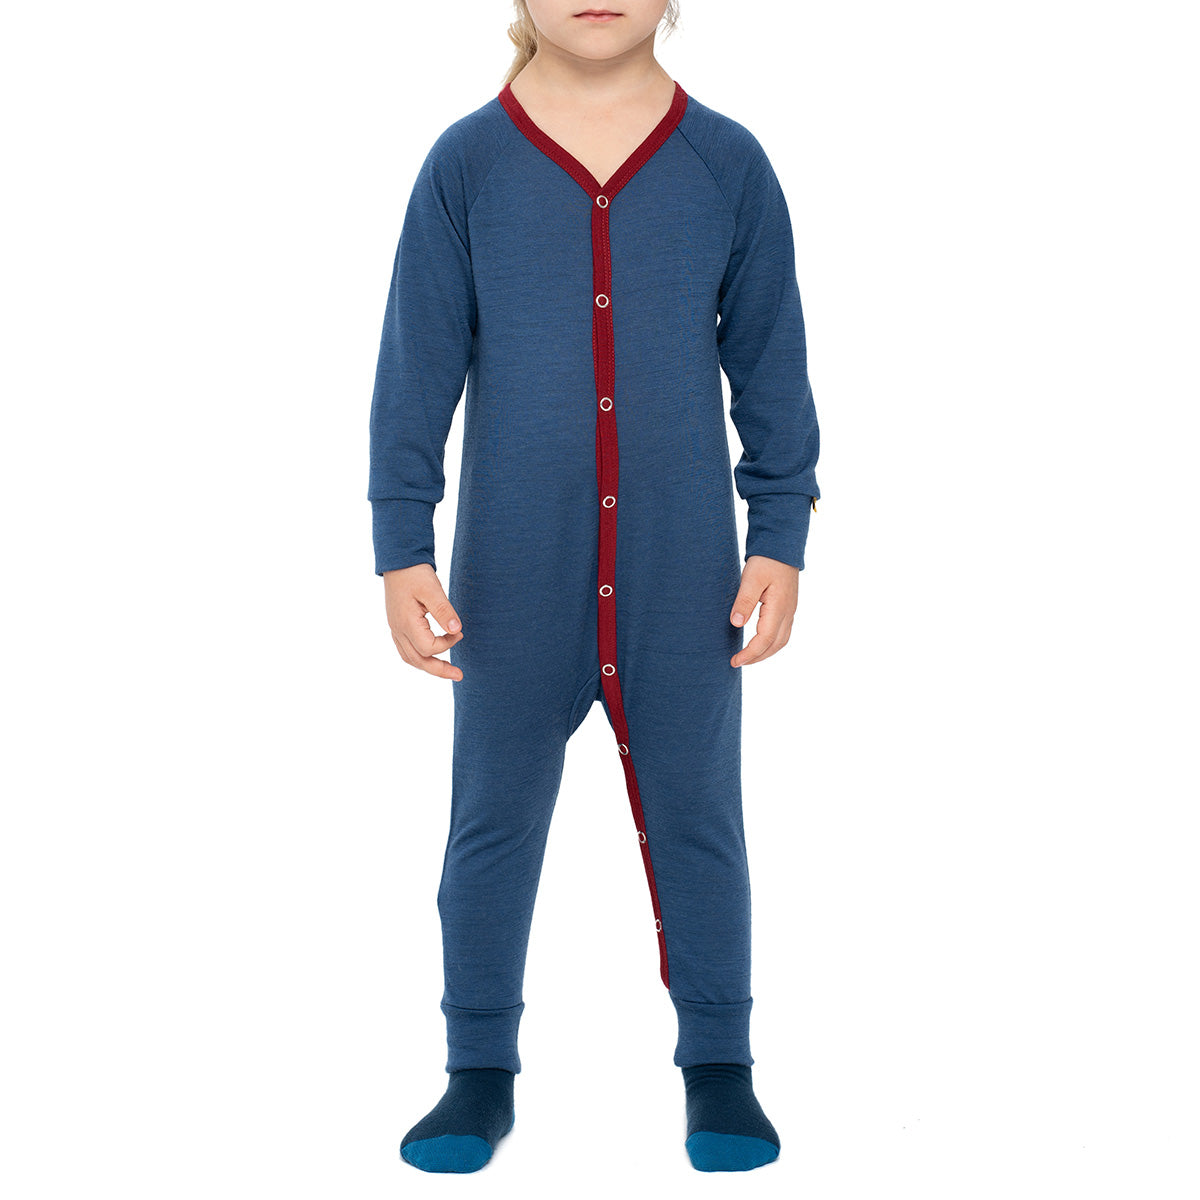 menique Kids' Merino 160 Romper Denim Color